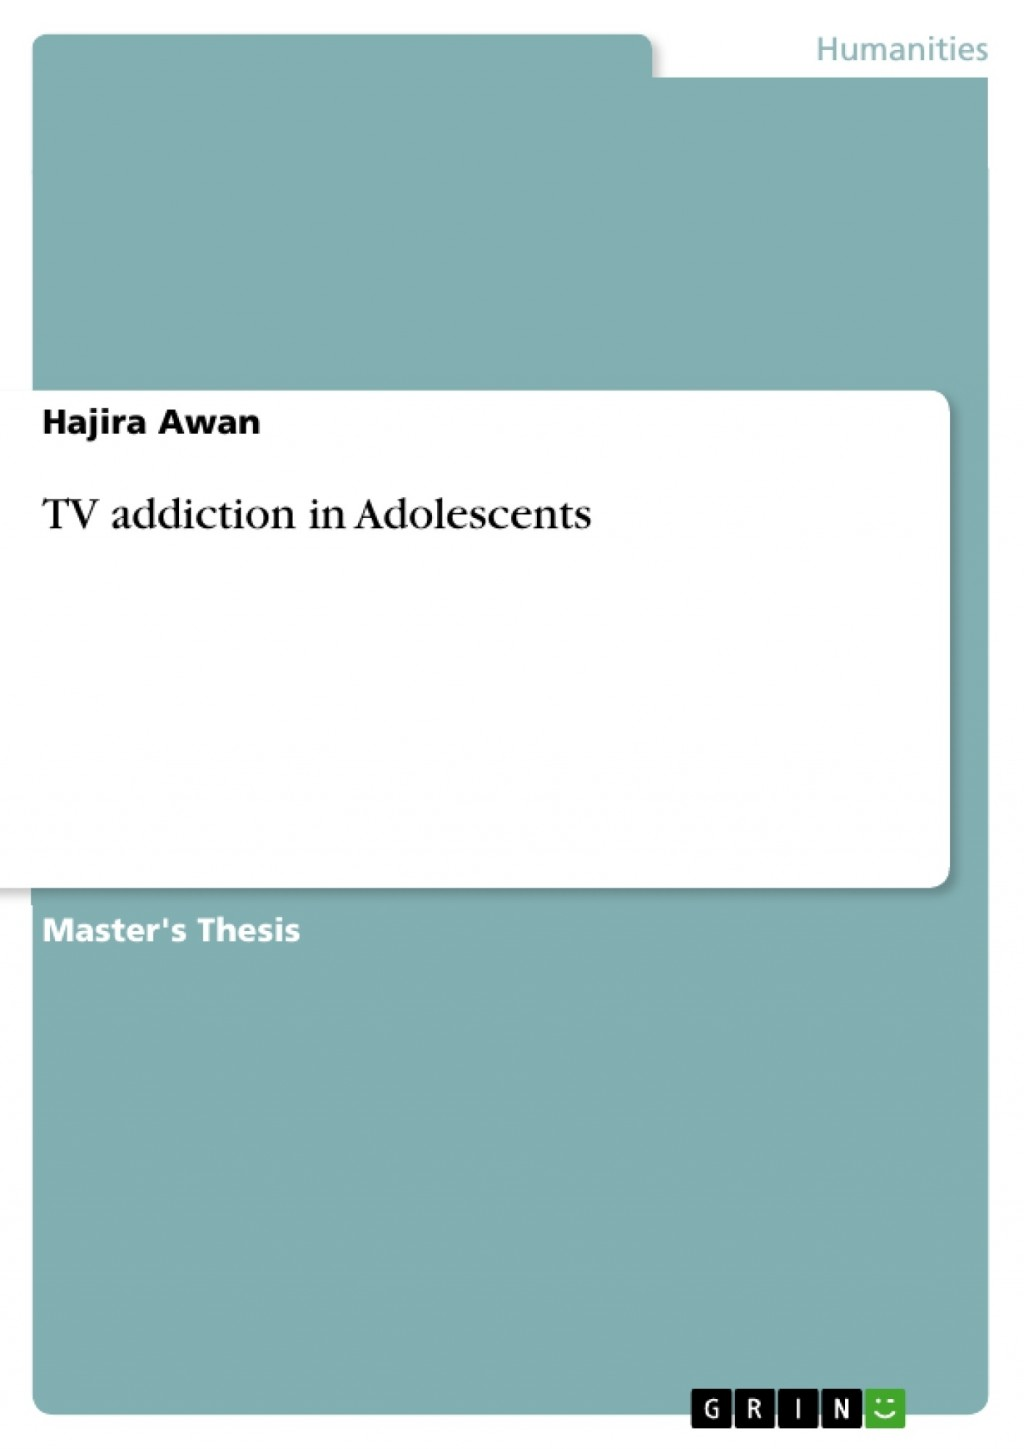 004 Essay Example Tv Addiction For Bsc 286671 0 Beautiful Large